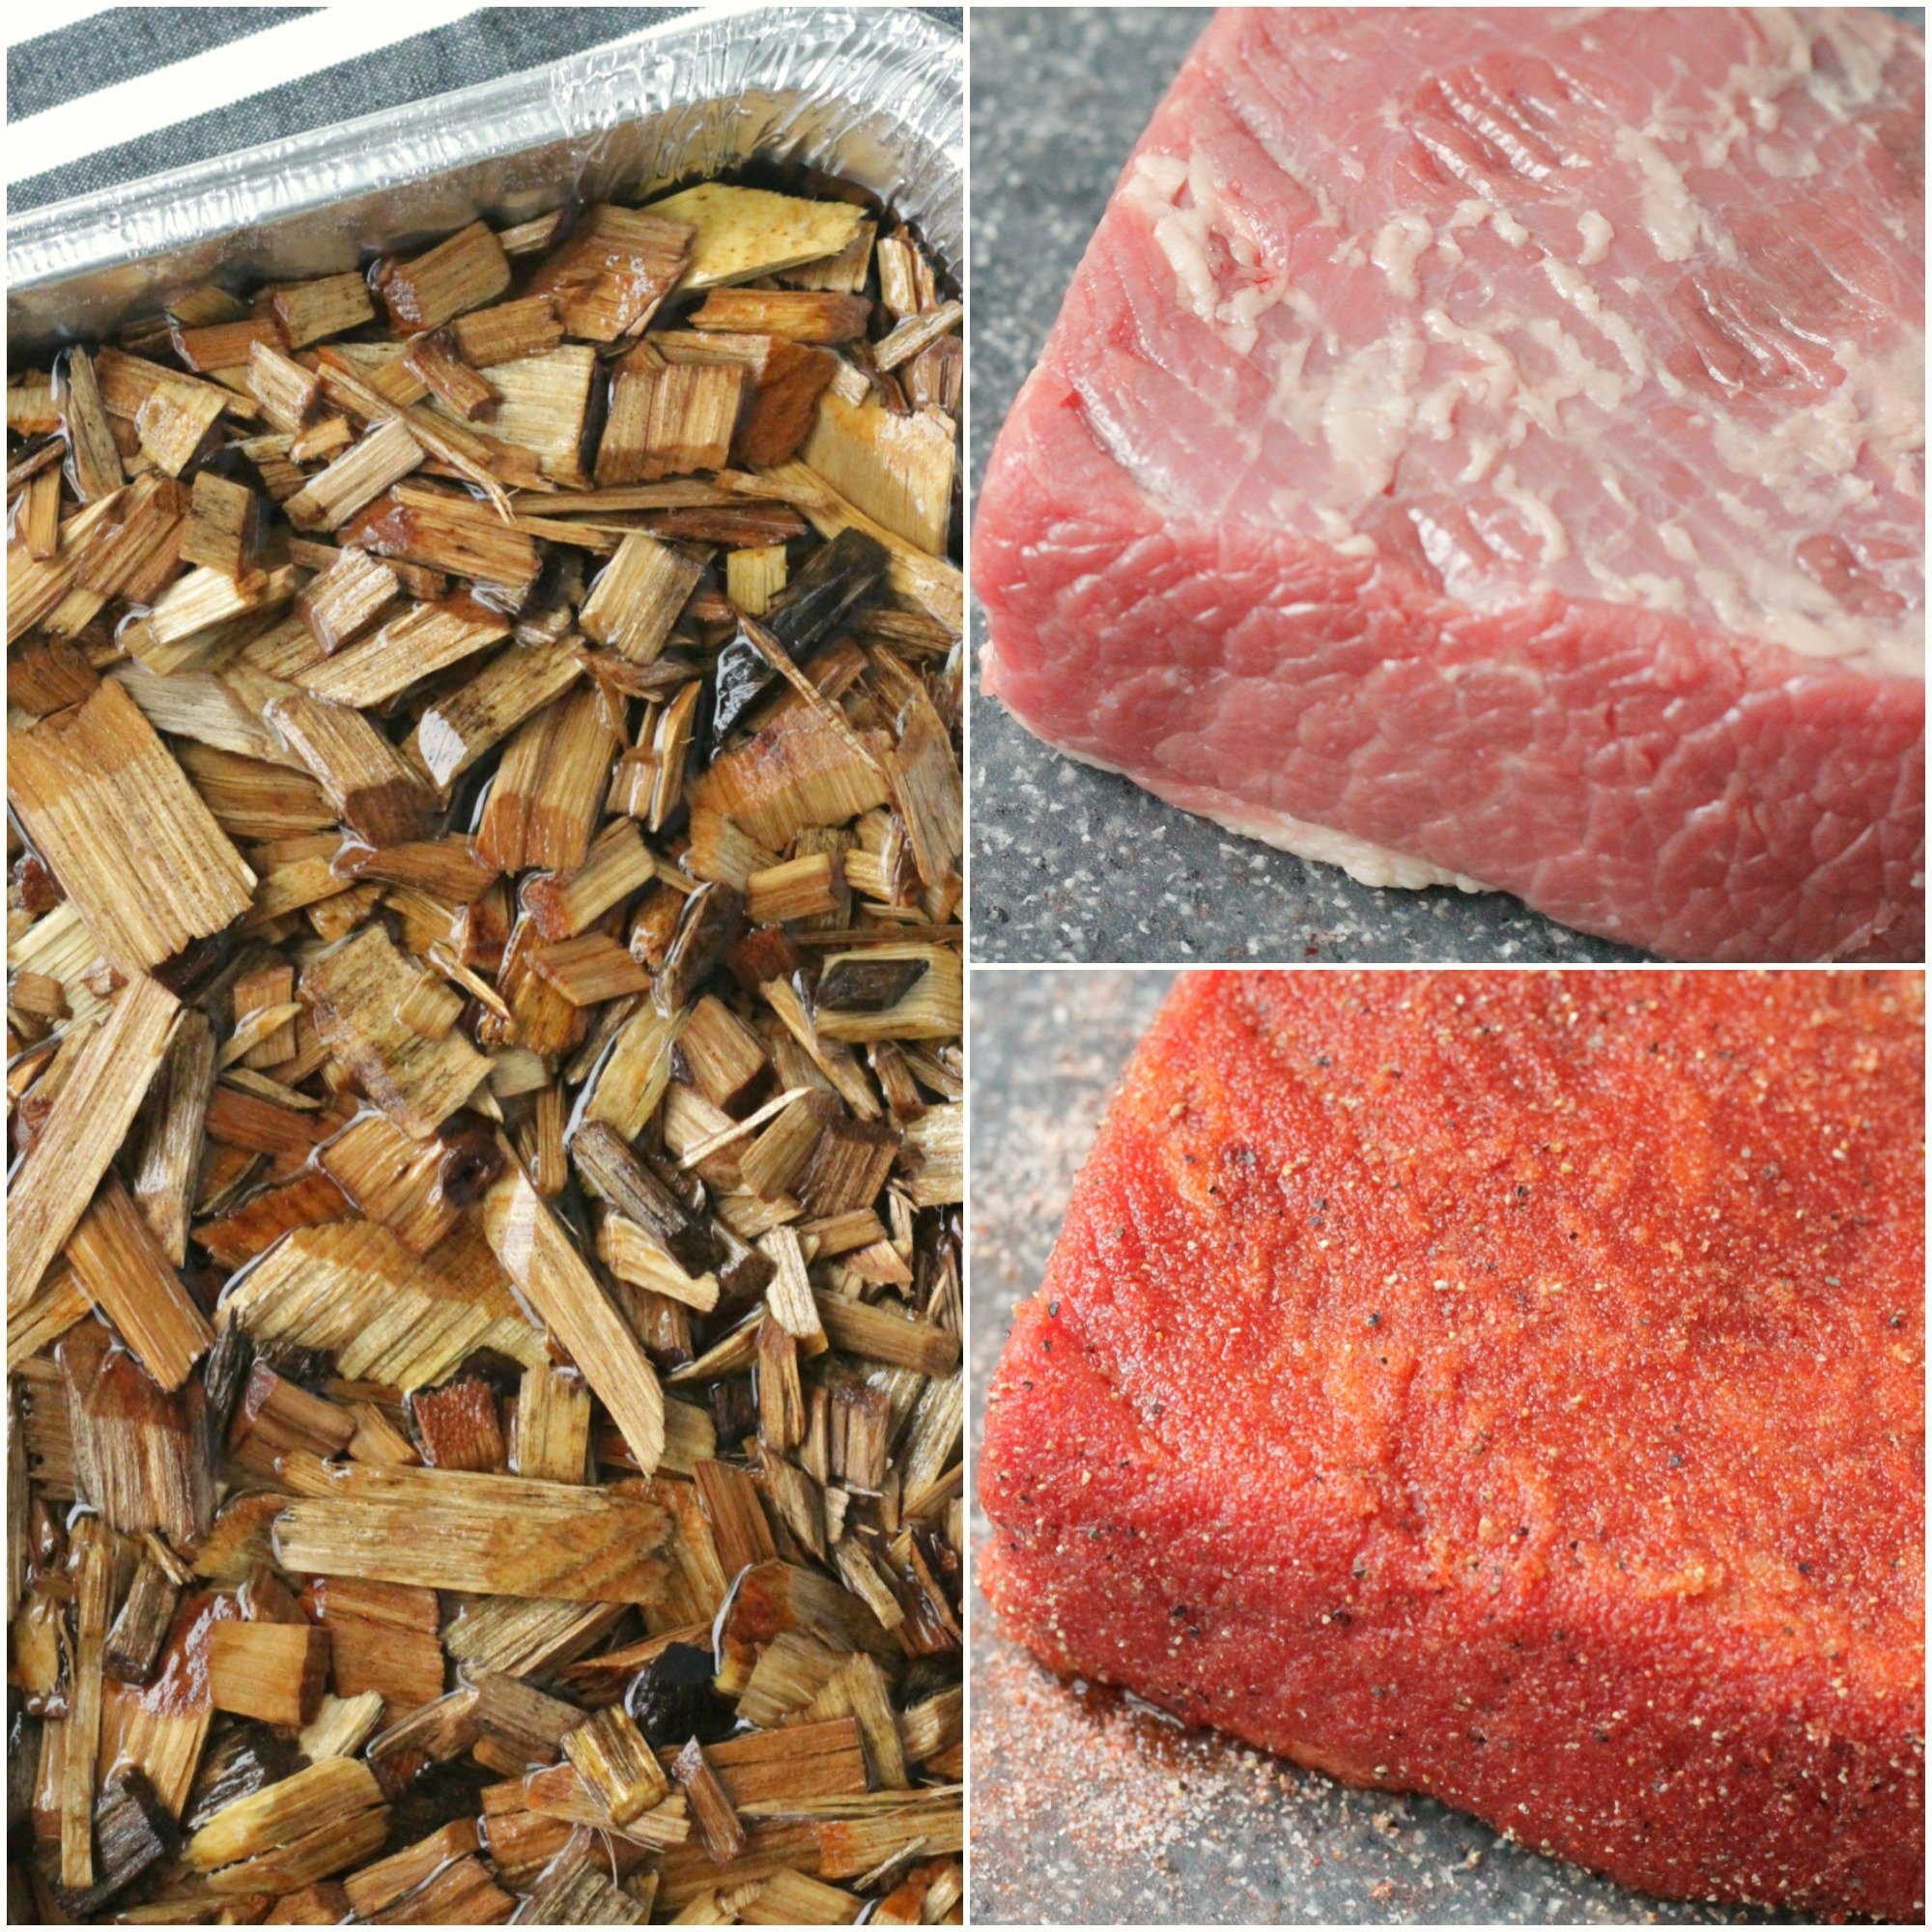 collage of soaking wood chips and raw brisket both with and without rub